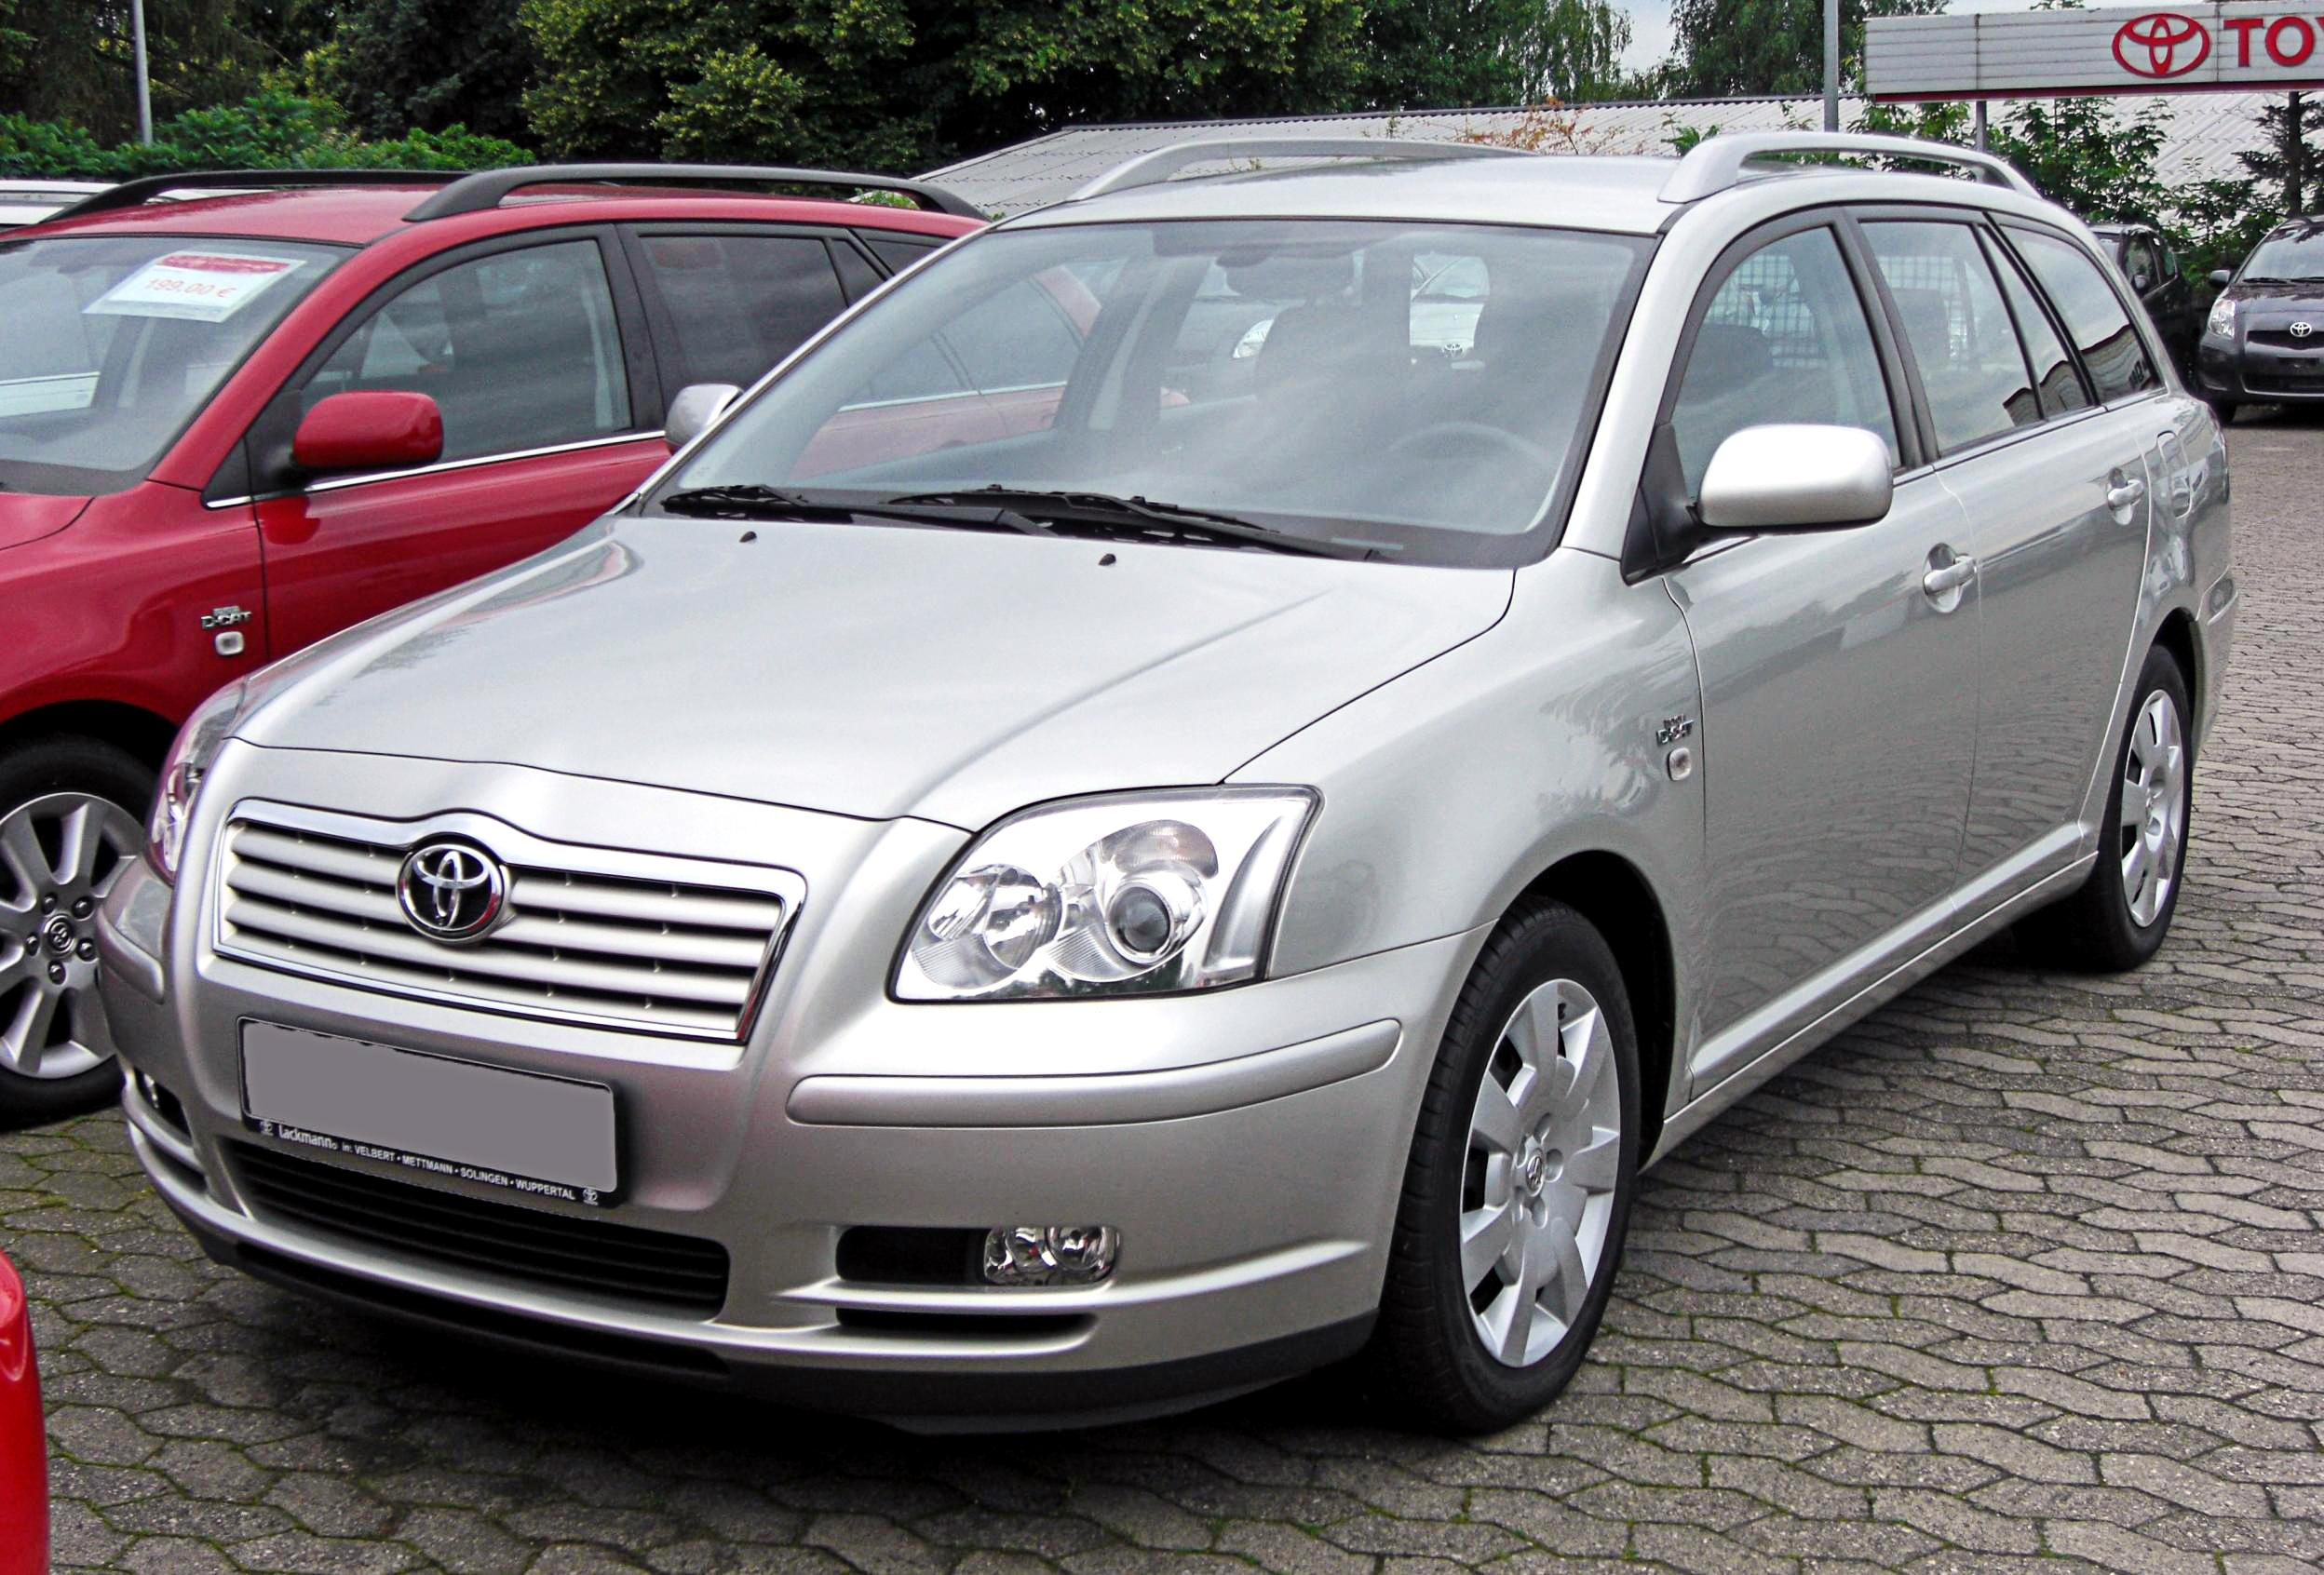 file:toyota avensis combi ii 20090620 front - wikimedia commons